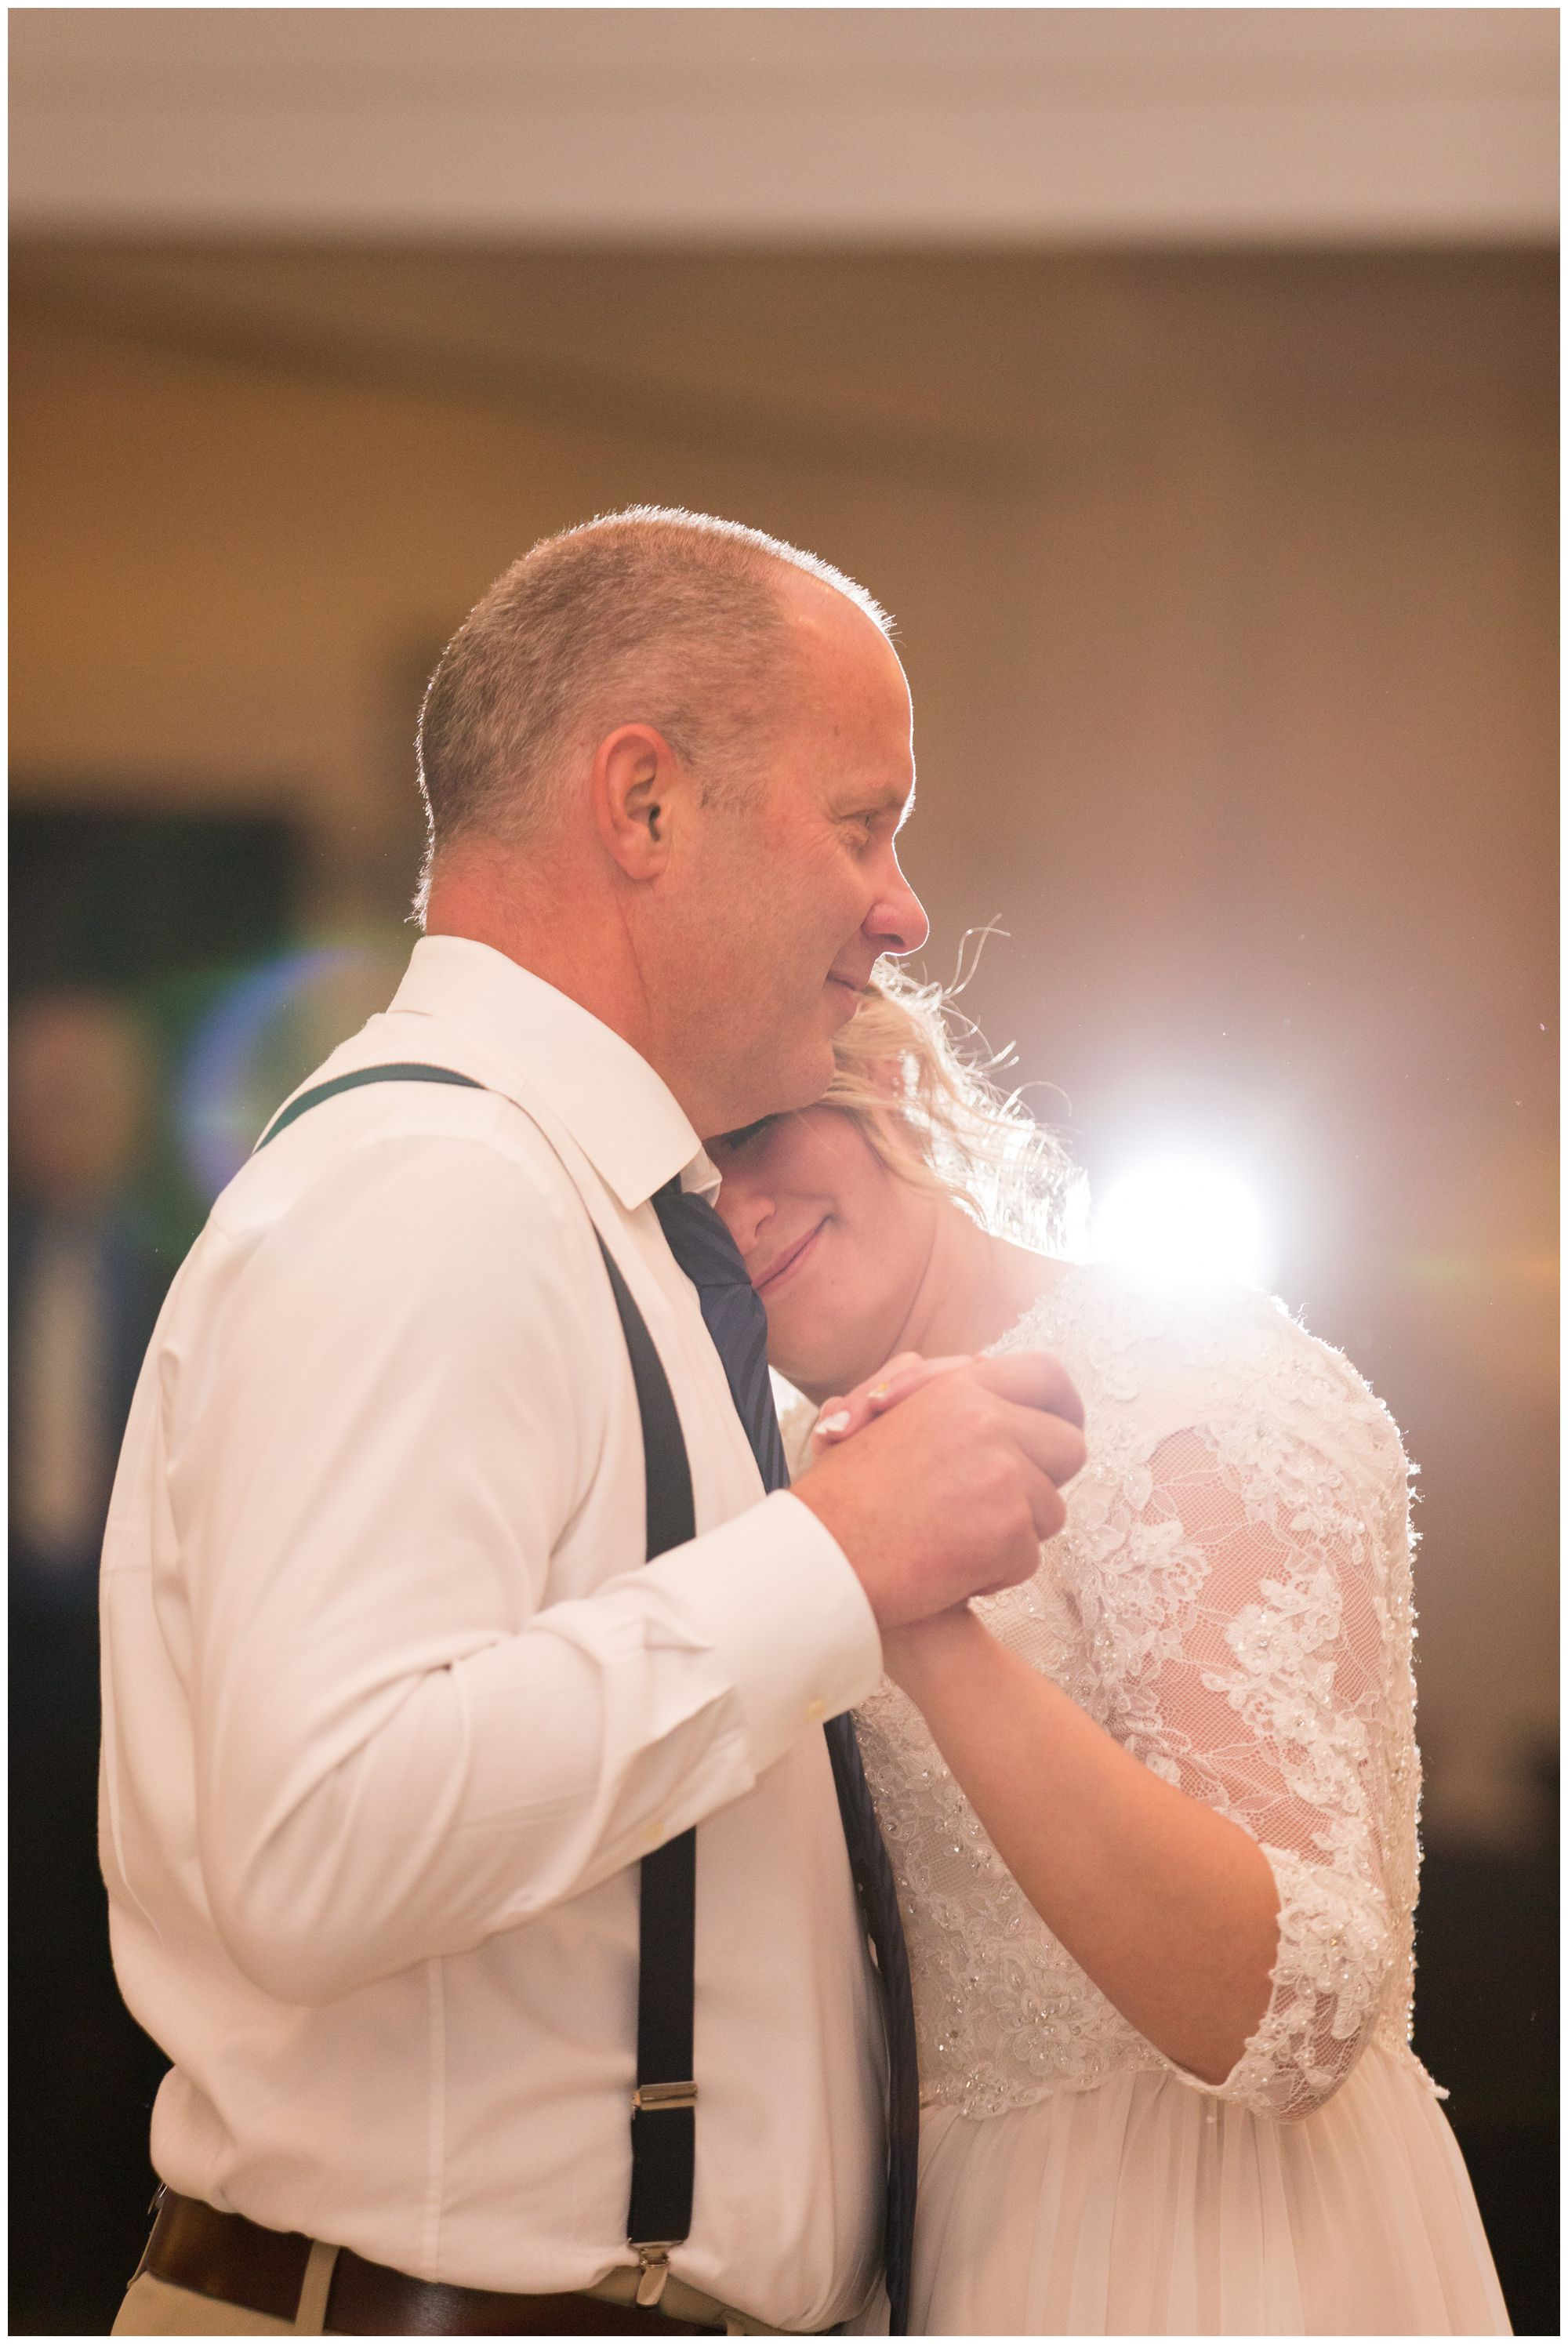 bride and father dance together during wedding reception at Cornerstone Center for the Arts in Muncie Indiana